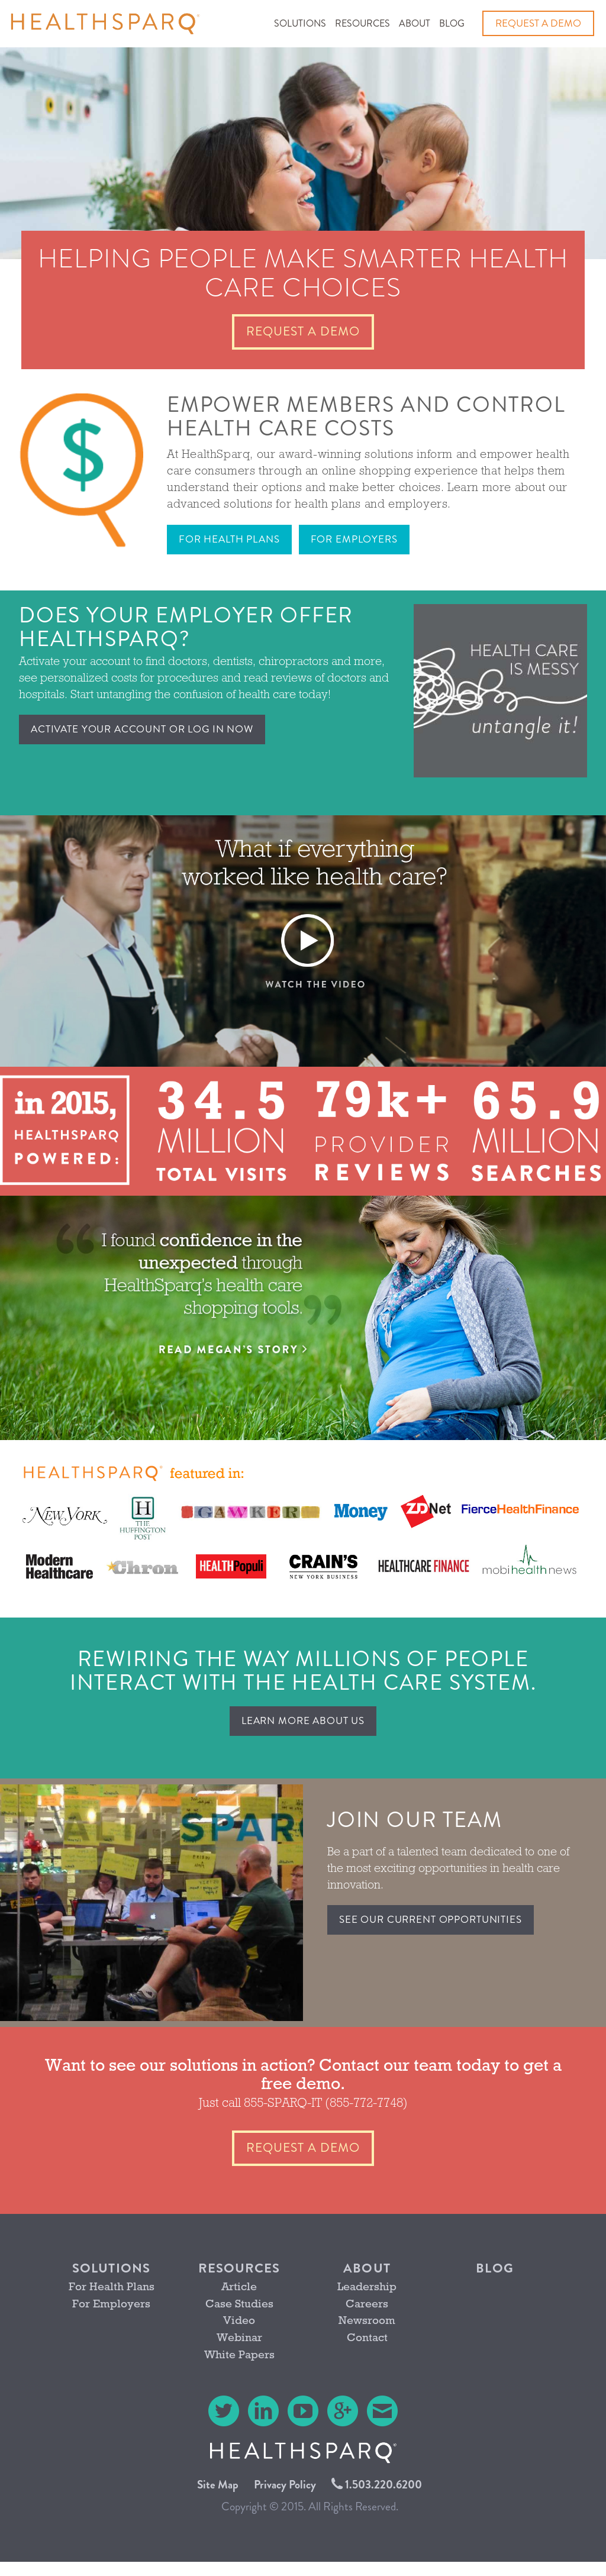 HealthSparq Competitors, Revenue and Employees - Owler Company Profile